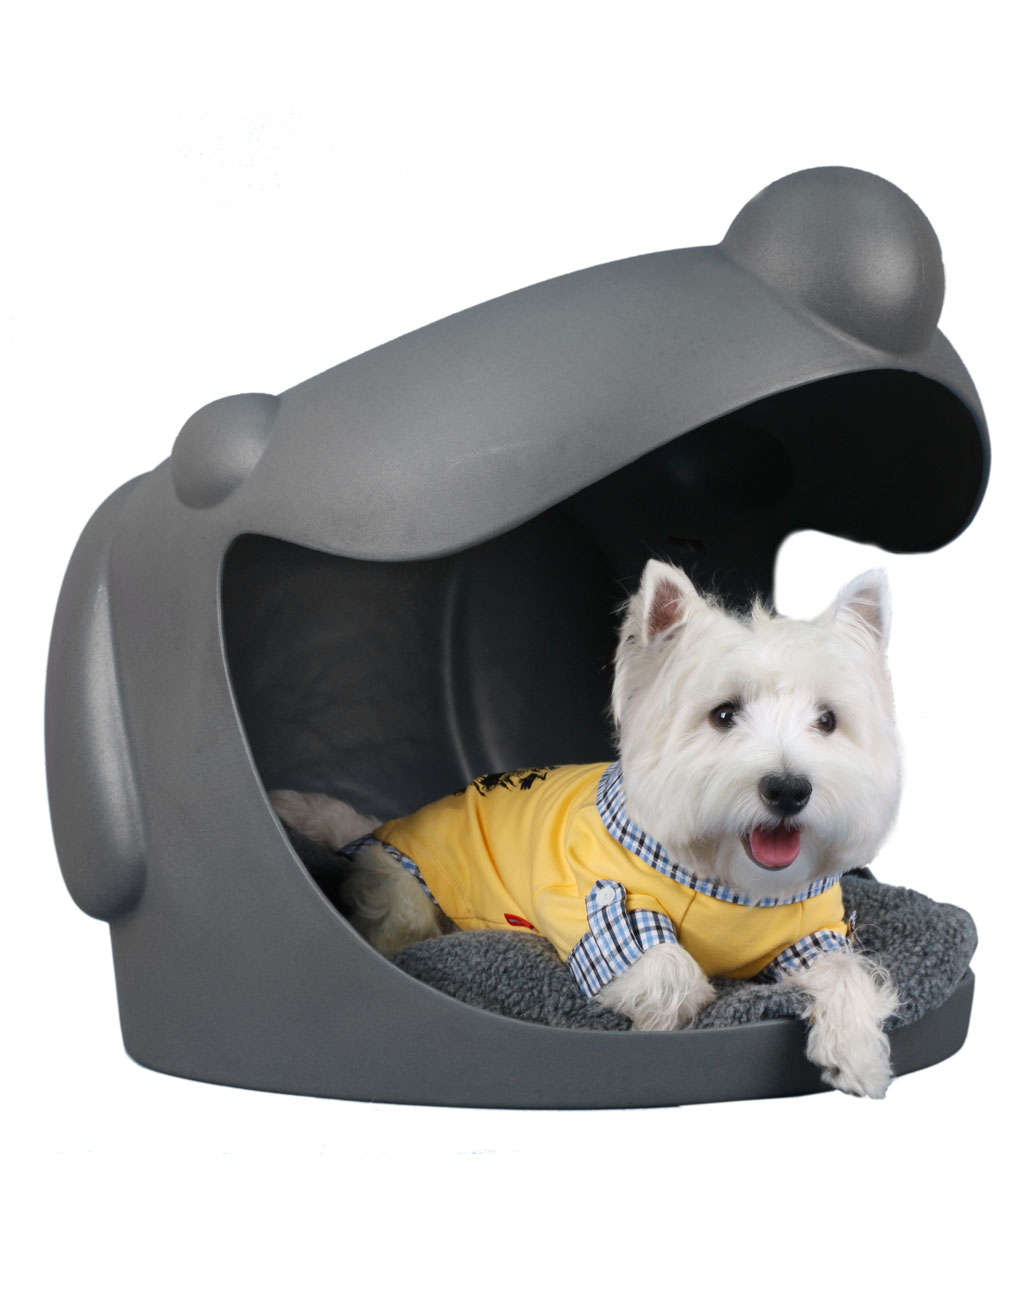 arnisays_barkie_dogbed